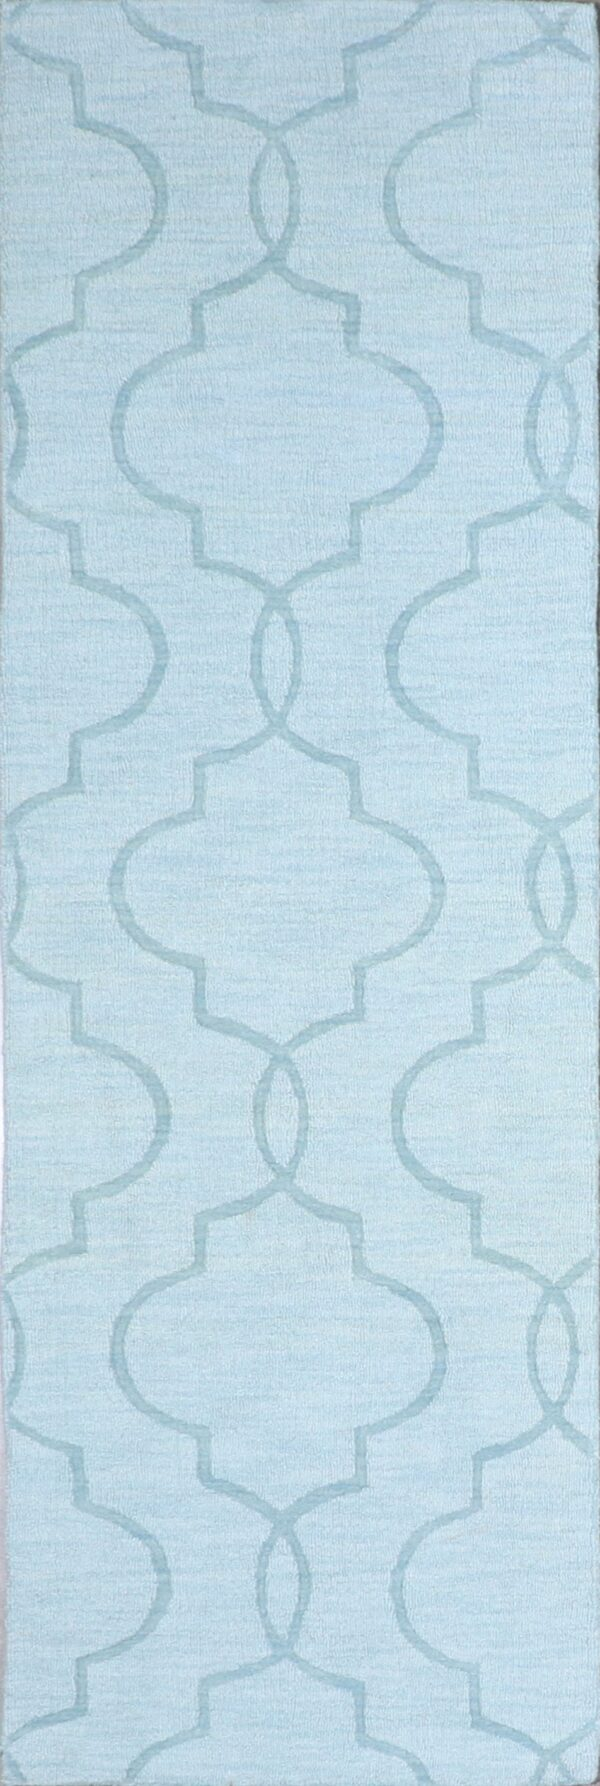 """2'6""""x7'10"""" Decorative Wool Hand-Tufted Rug - Direct Rug Import 